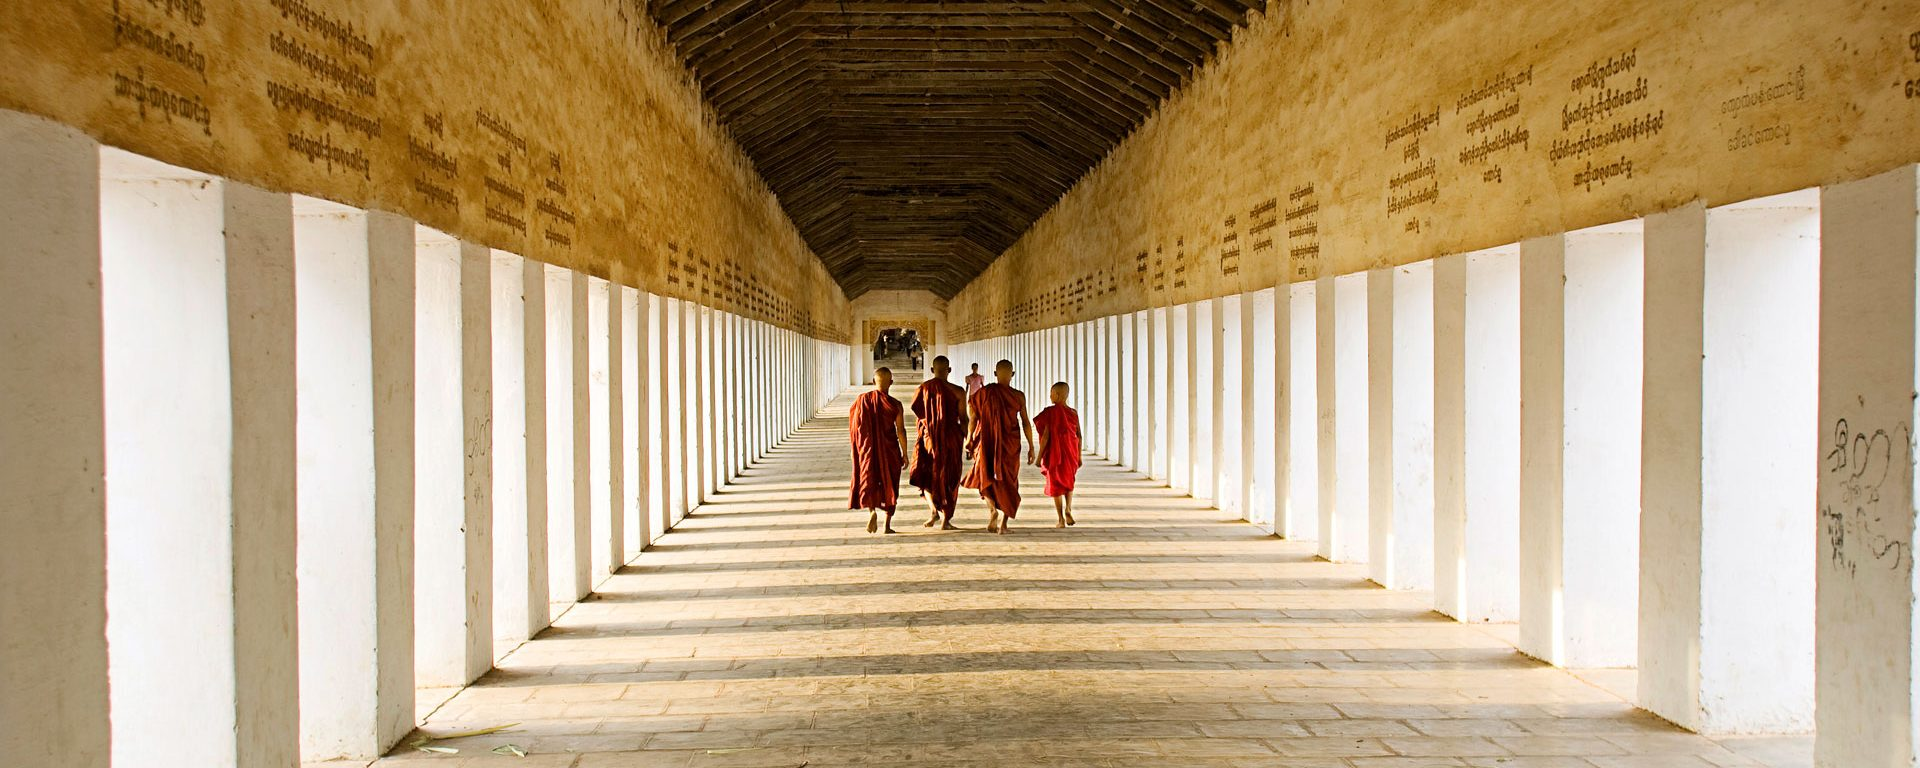 Young monks walking the hallway of Swezigon Pagoda near Bagan, Myanmar